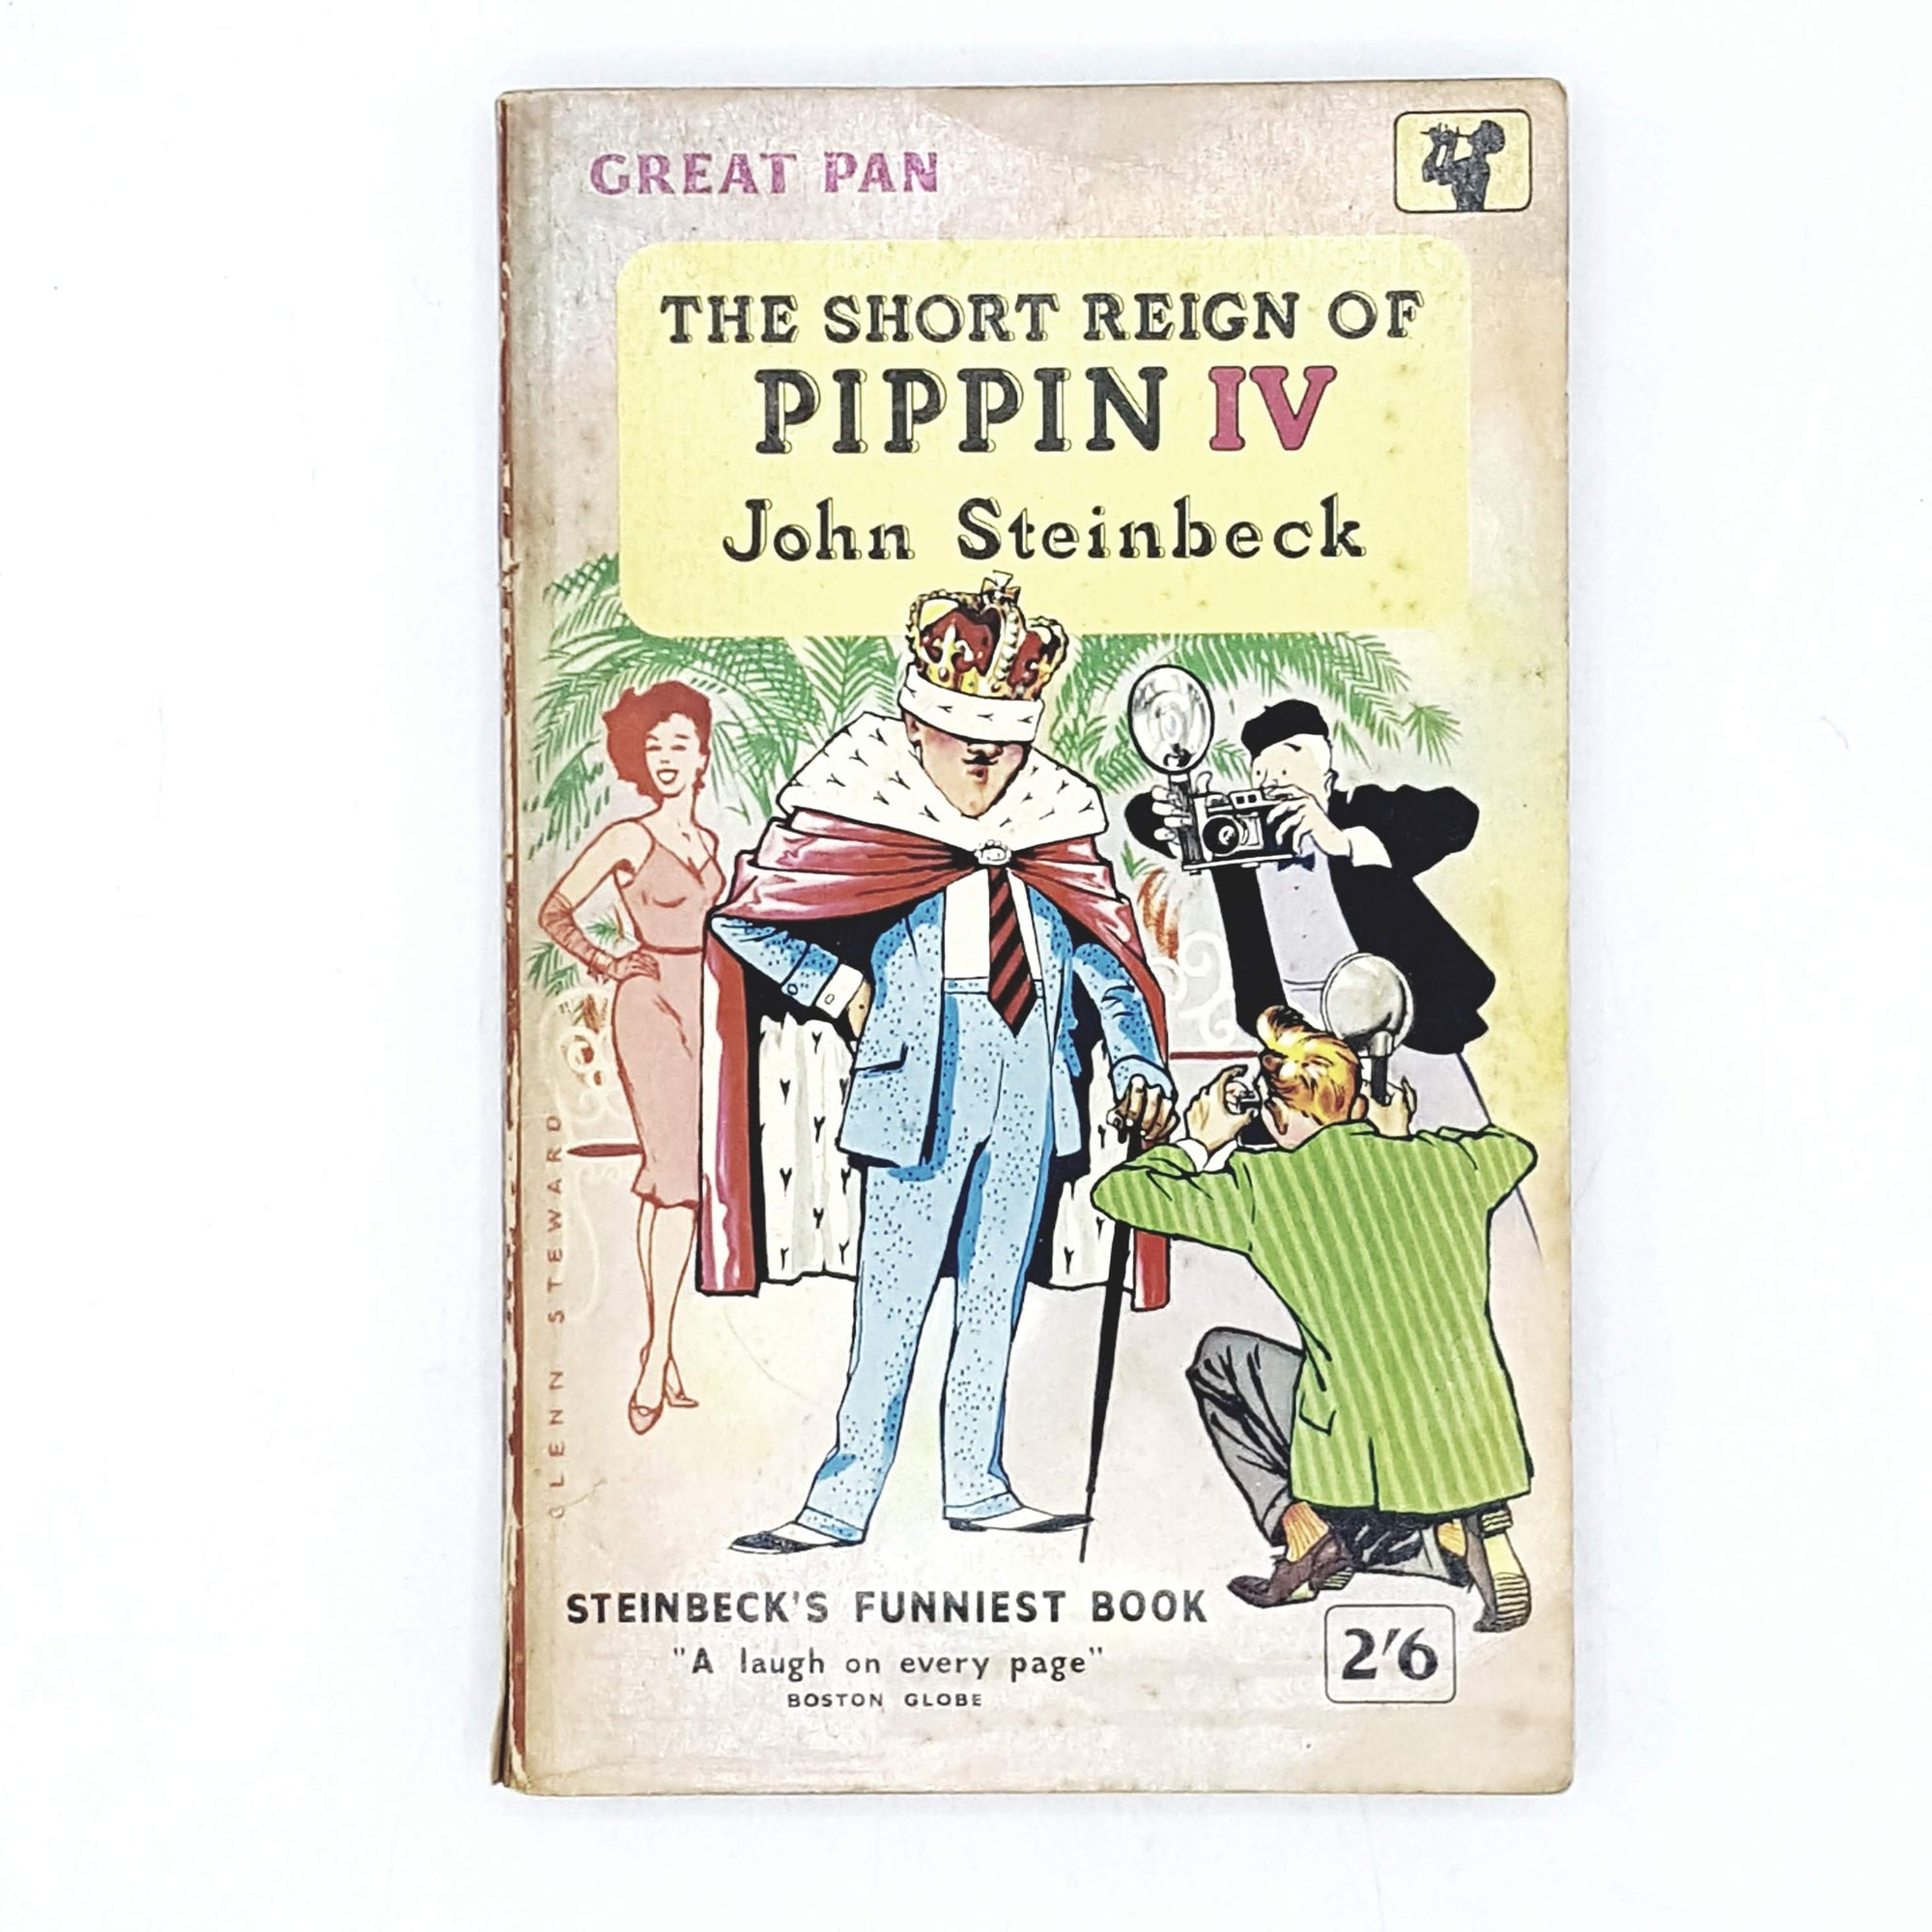 John Steinbeck's The Short Reign of Pippin IV 1957